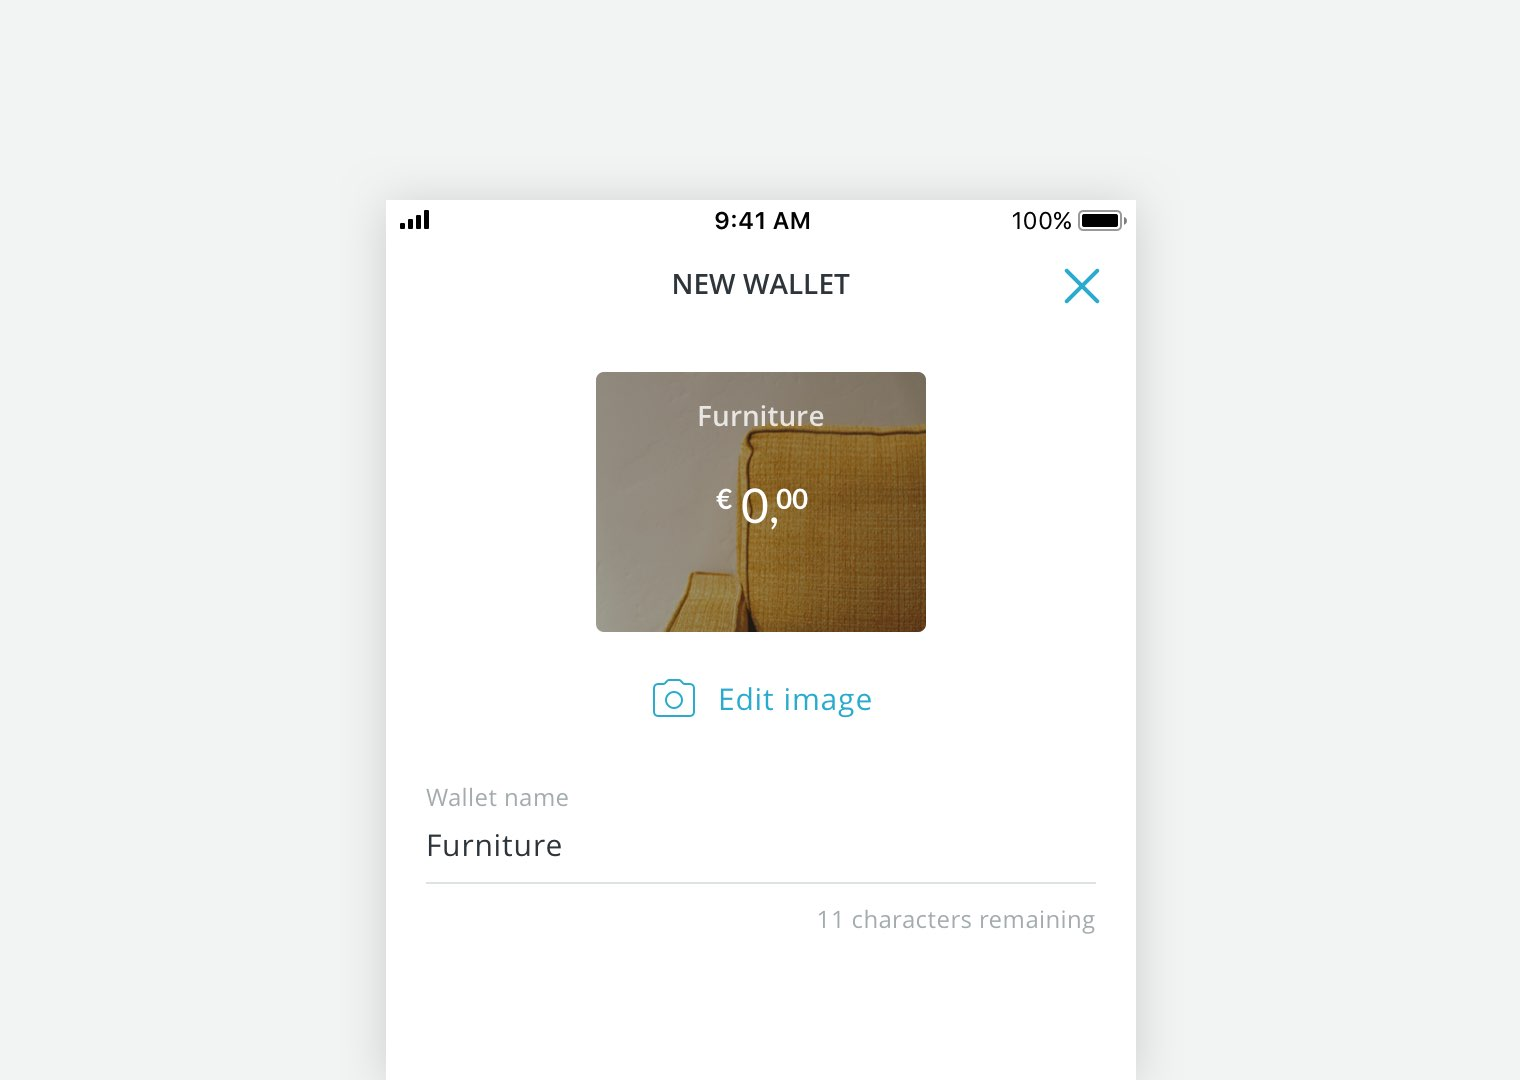 my_new-wallet_furniture